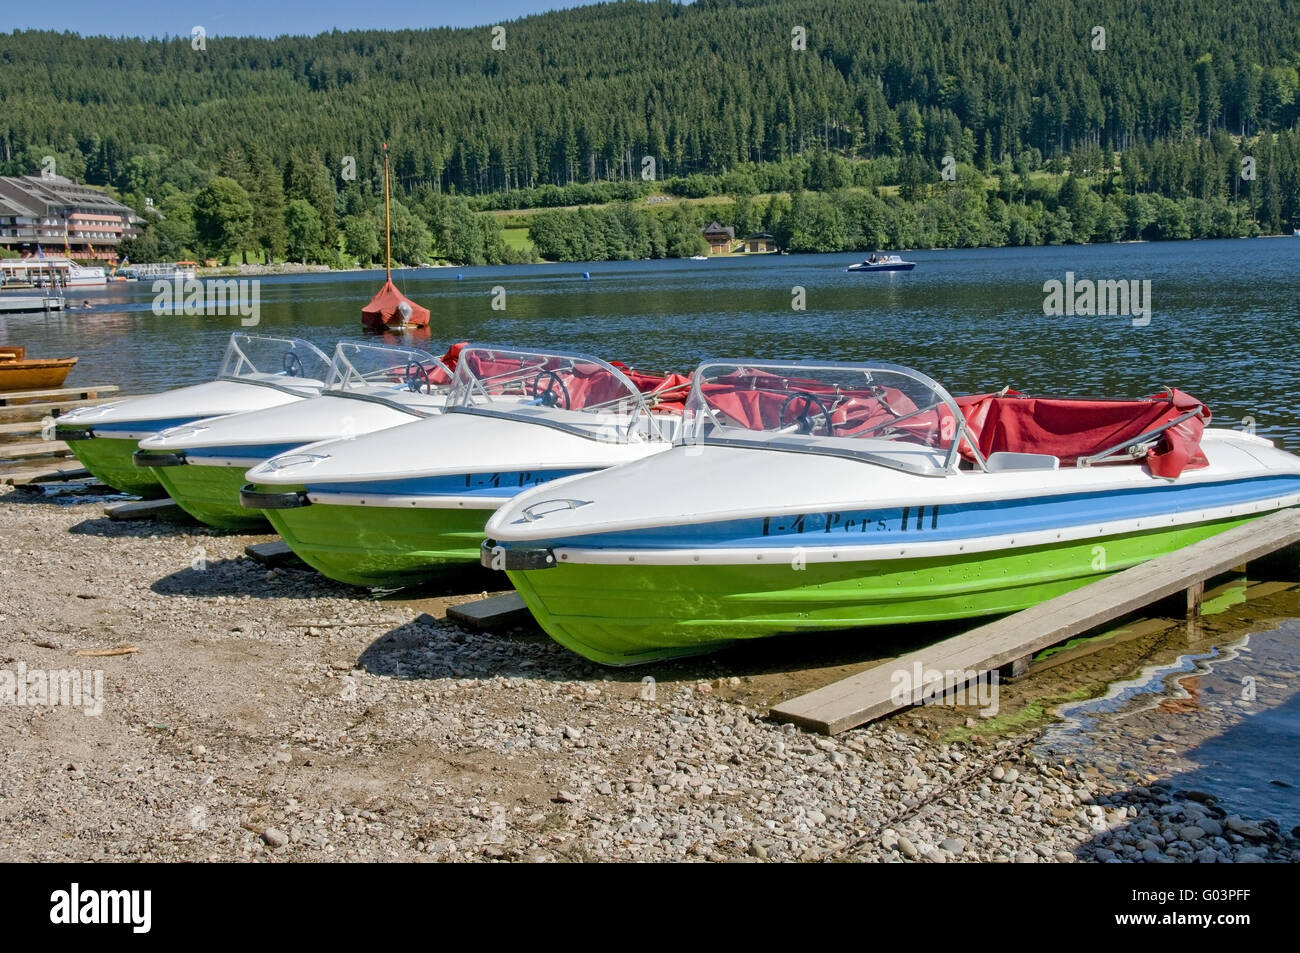 Moorage for boats at the Titisee - Stock Image